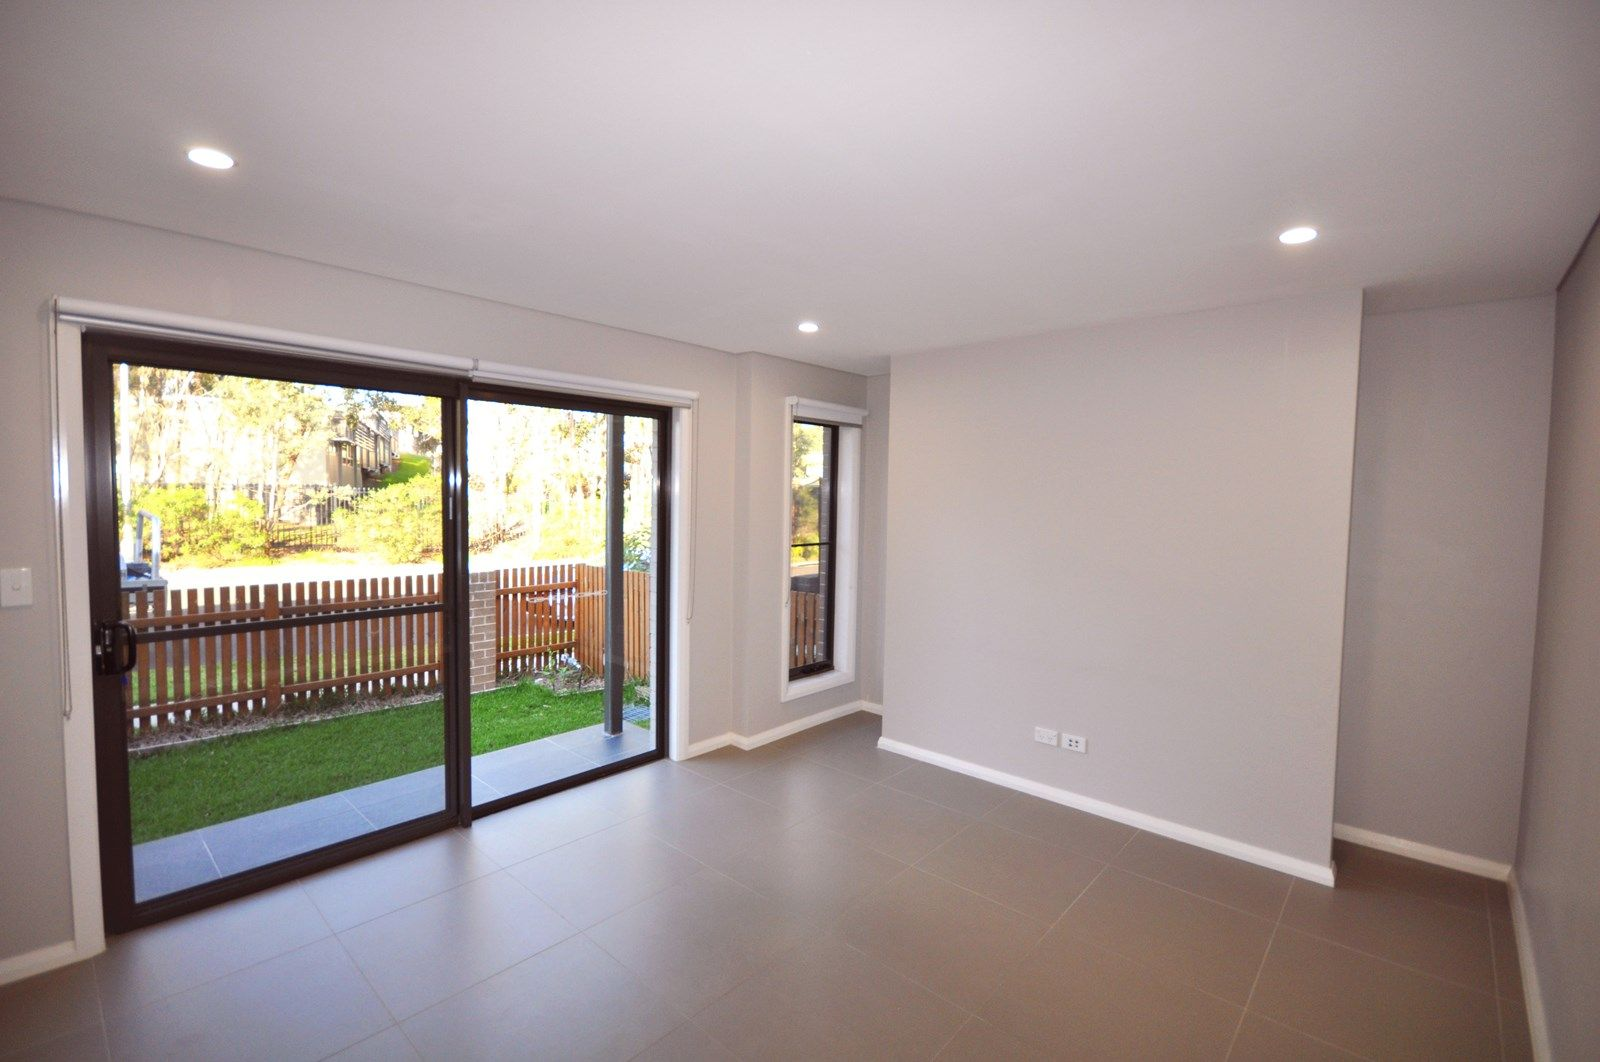 22 Caballo Street, Rouse Hill NSW 2155, Image 1